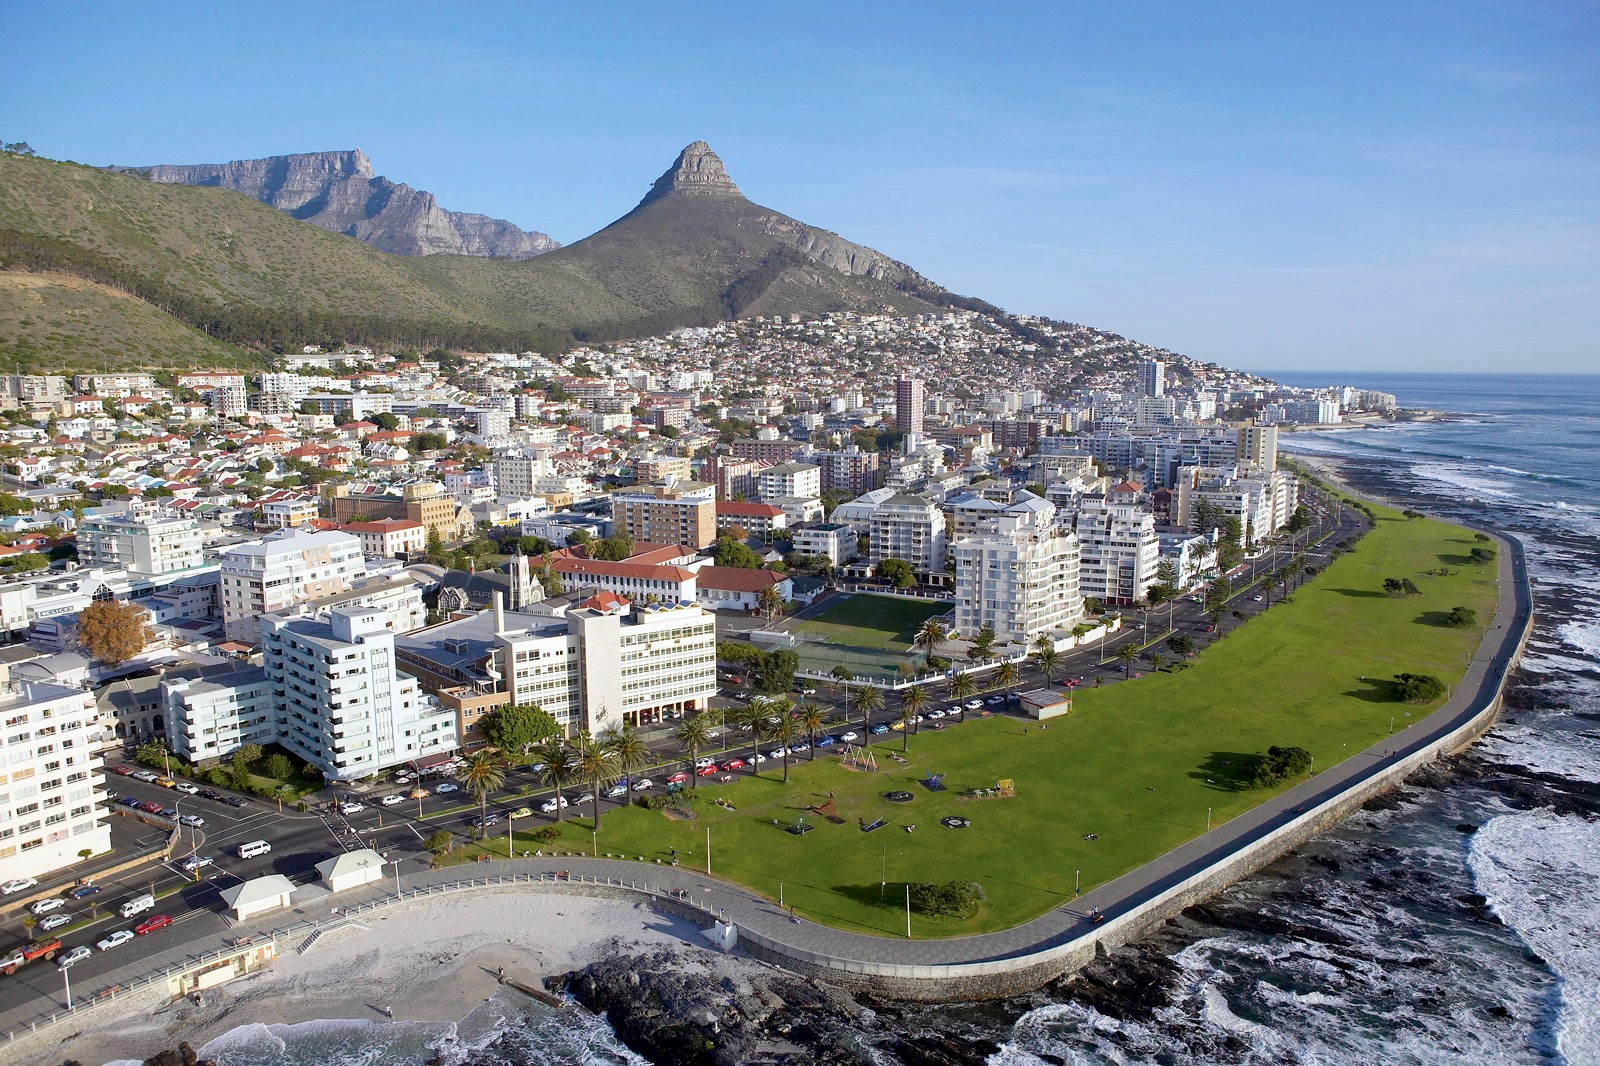 File:Aerial View of Sea Point, Cape Town South Africa.jpg - Wikimedia  Commons